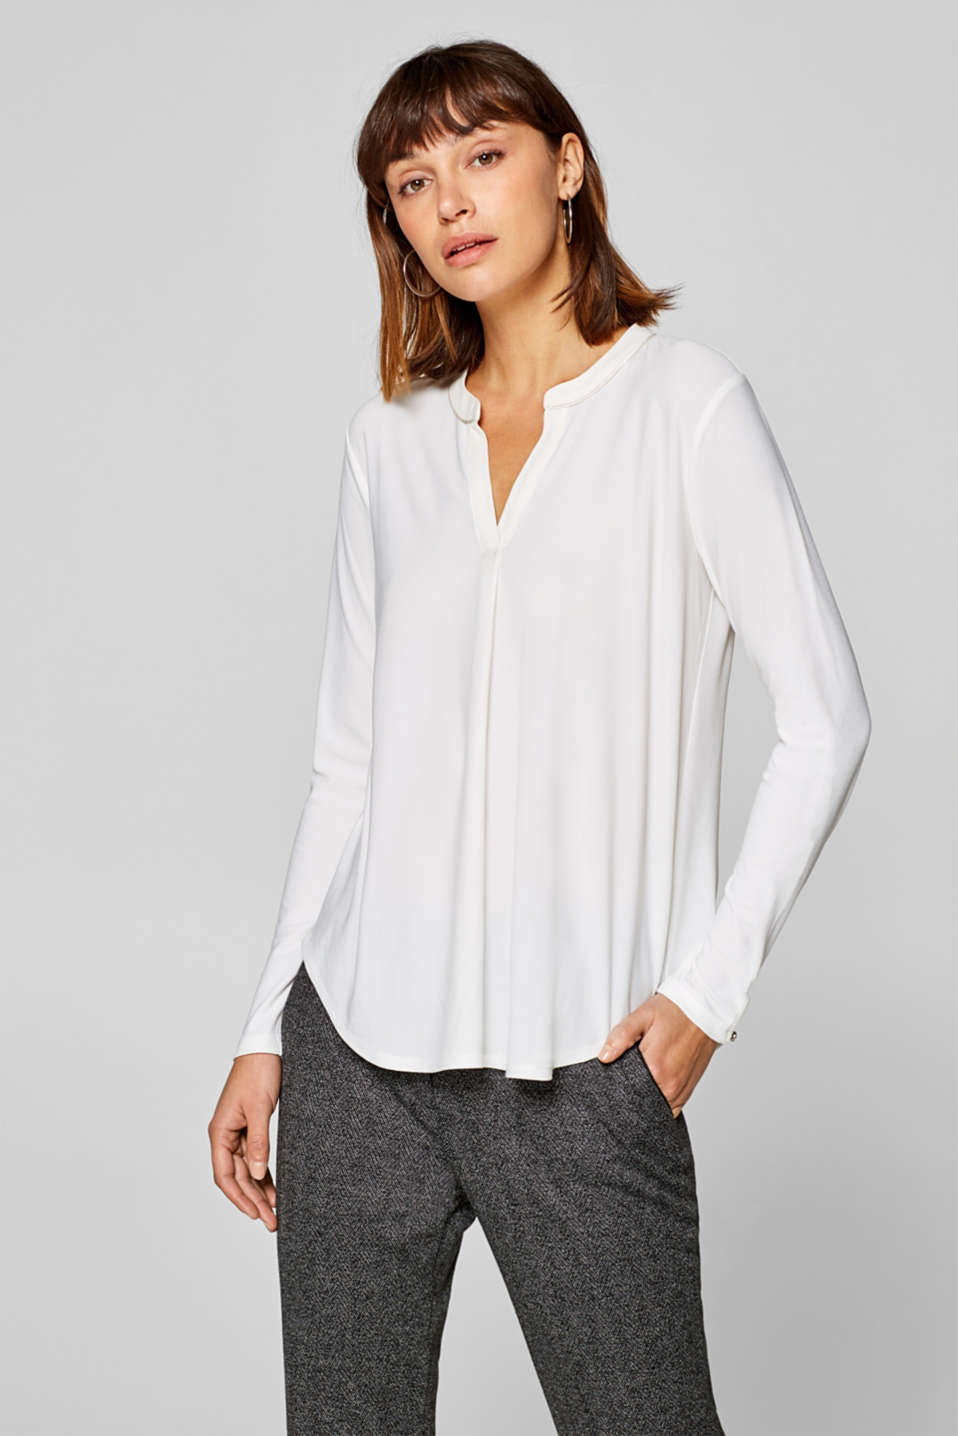 Esprit - Henley long sleeve top with a decorative pleat and added stretch